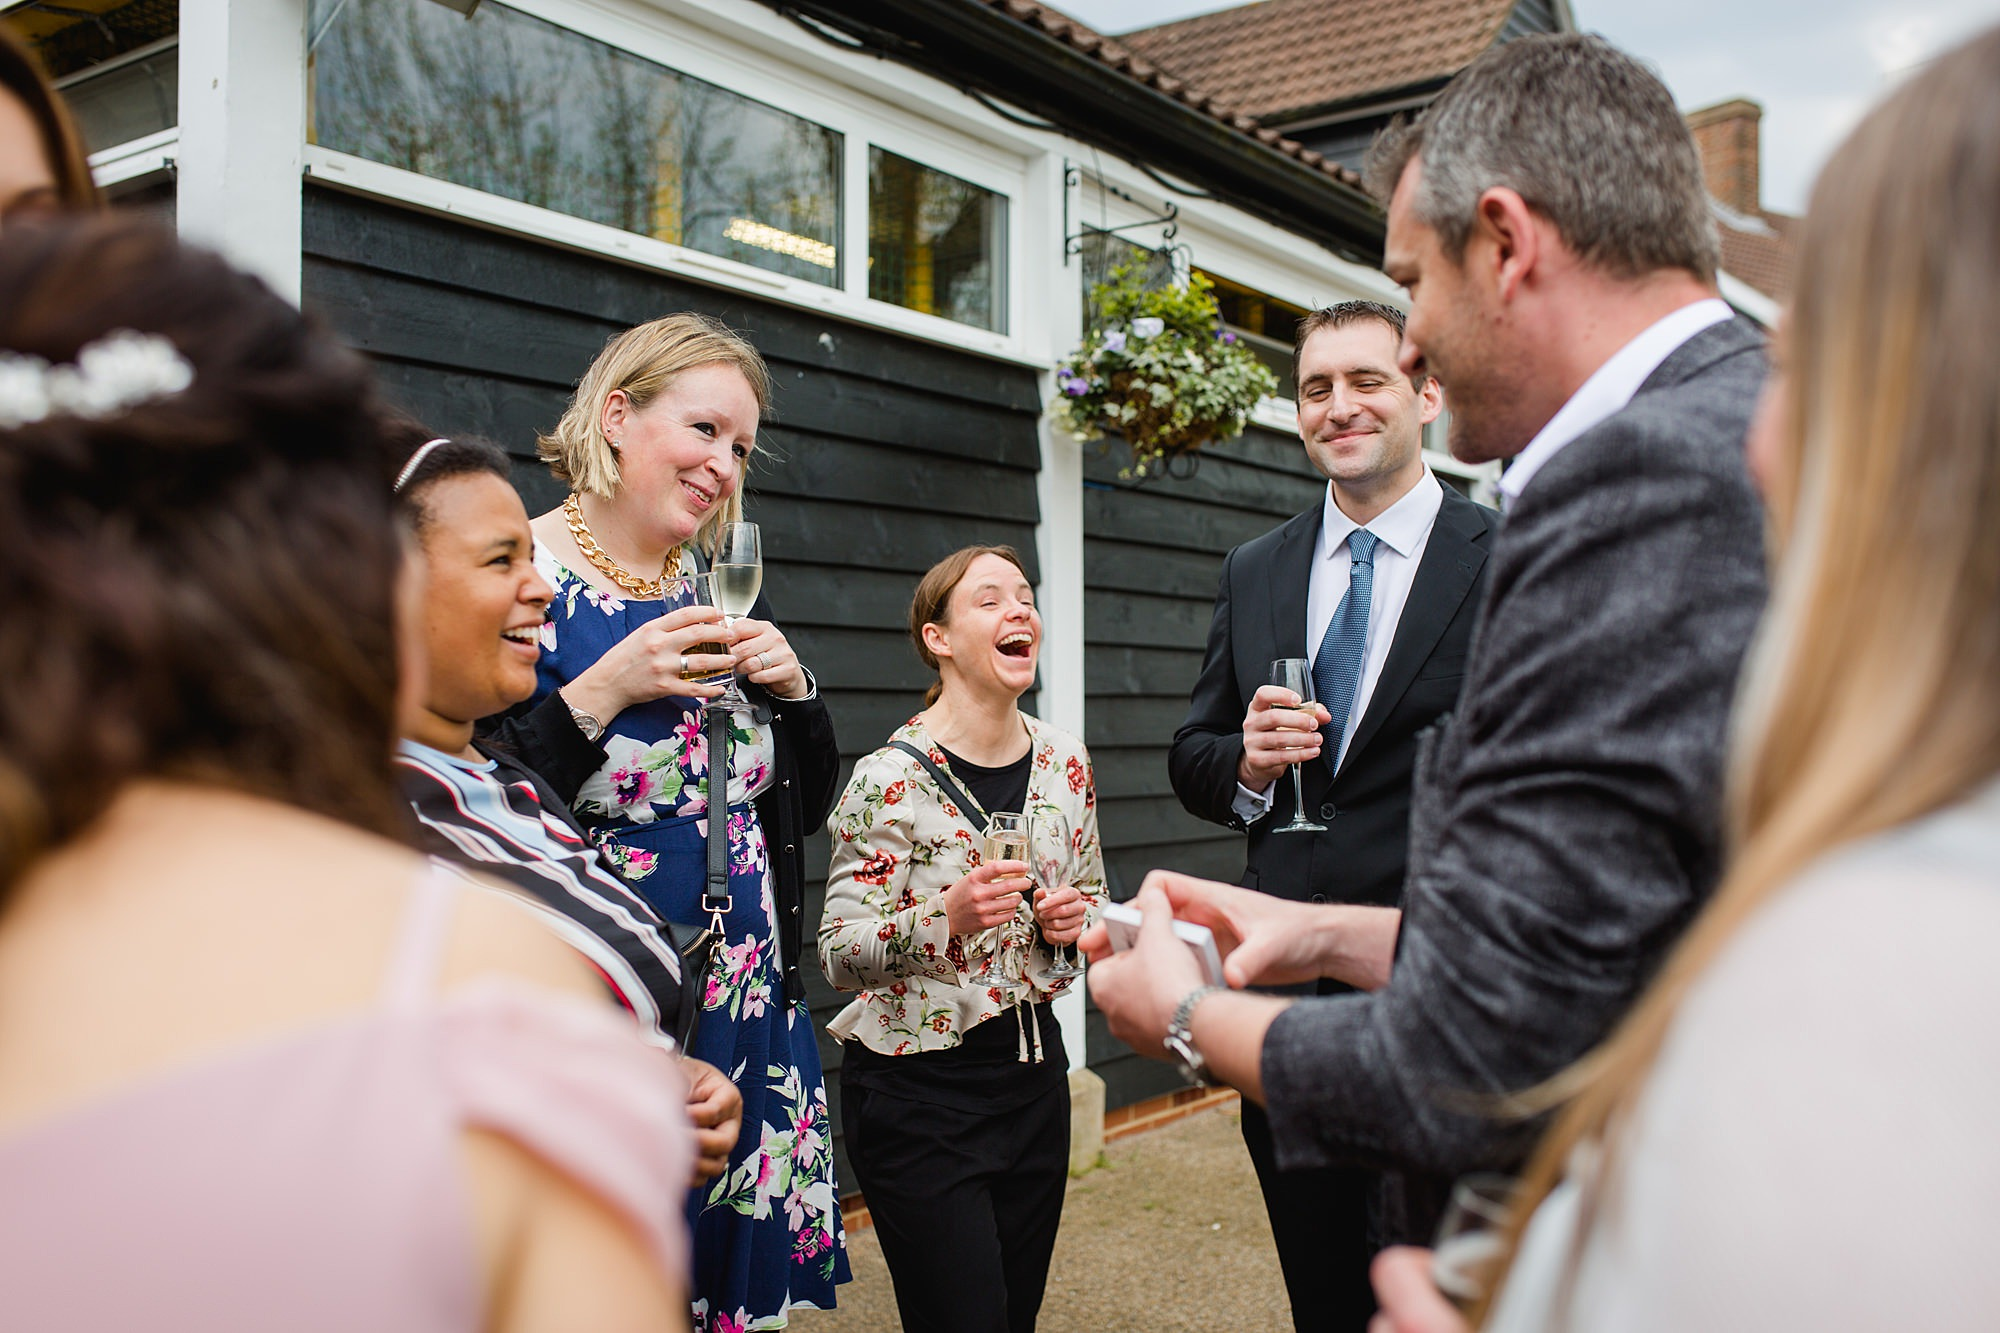 Bank of England Sports Centre wedding guests laugh at magician